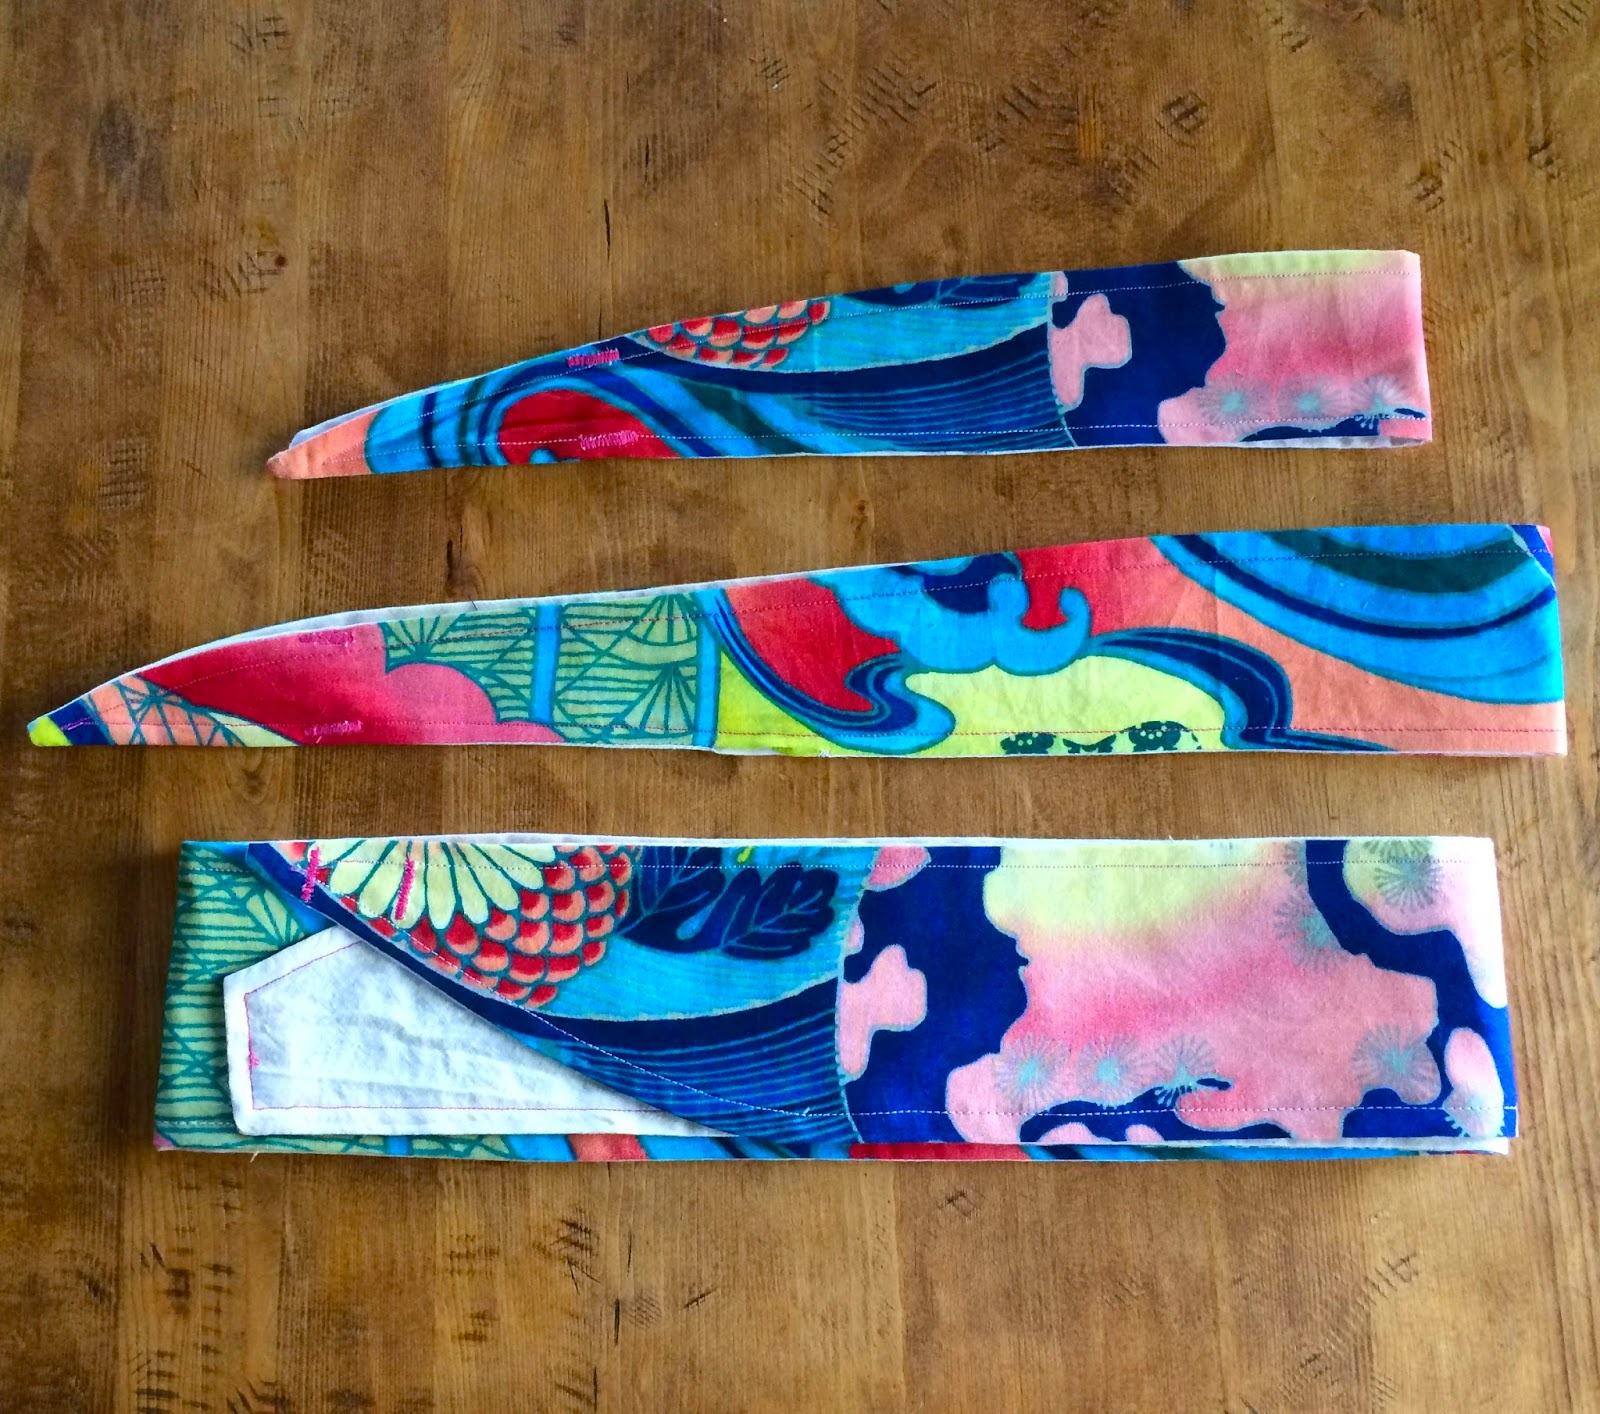 Ivy & Co headbands & boho wraps